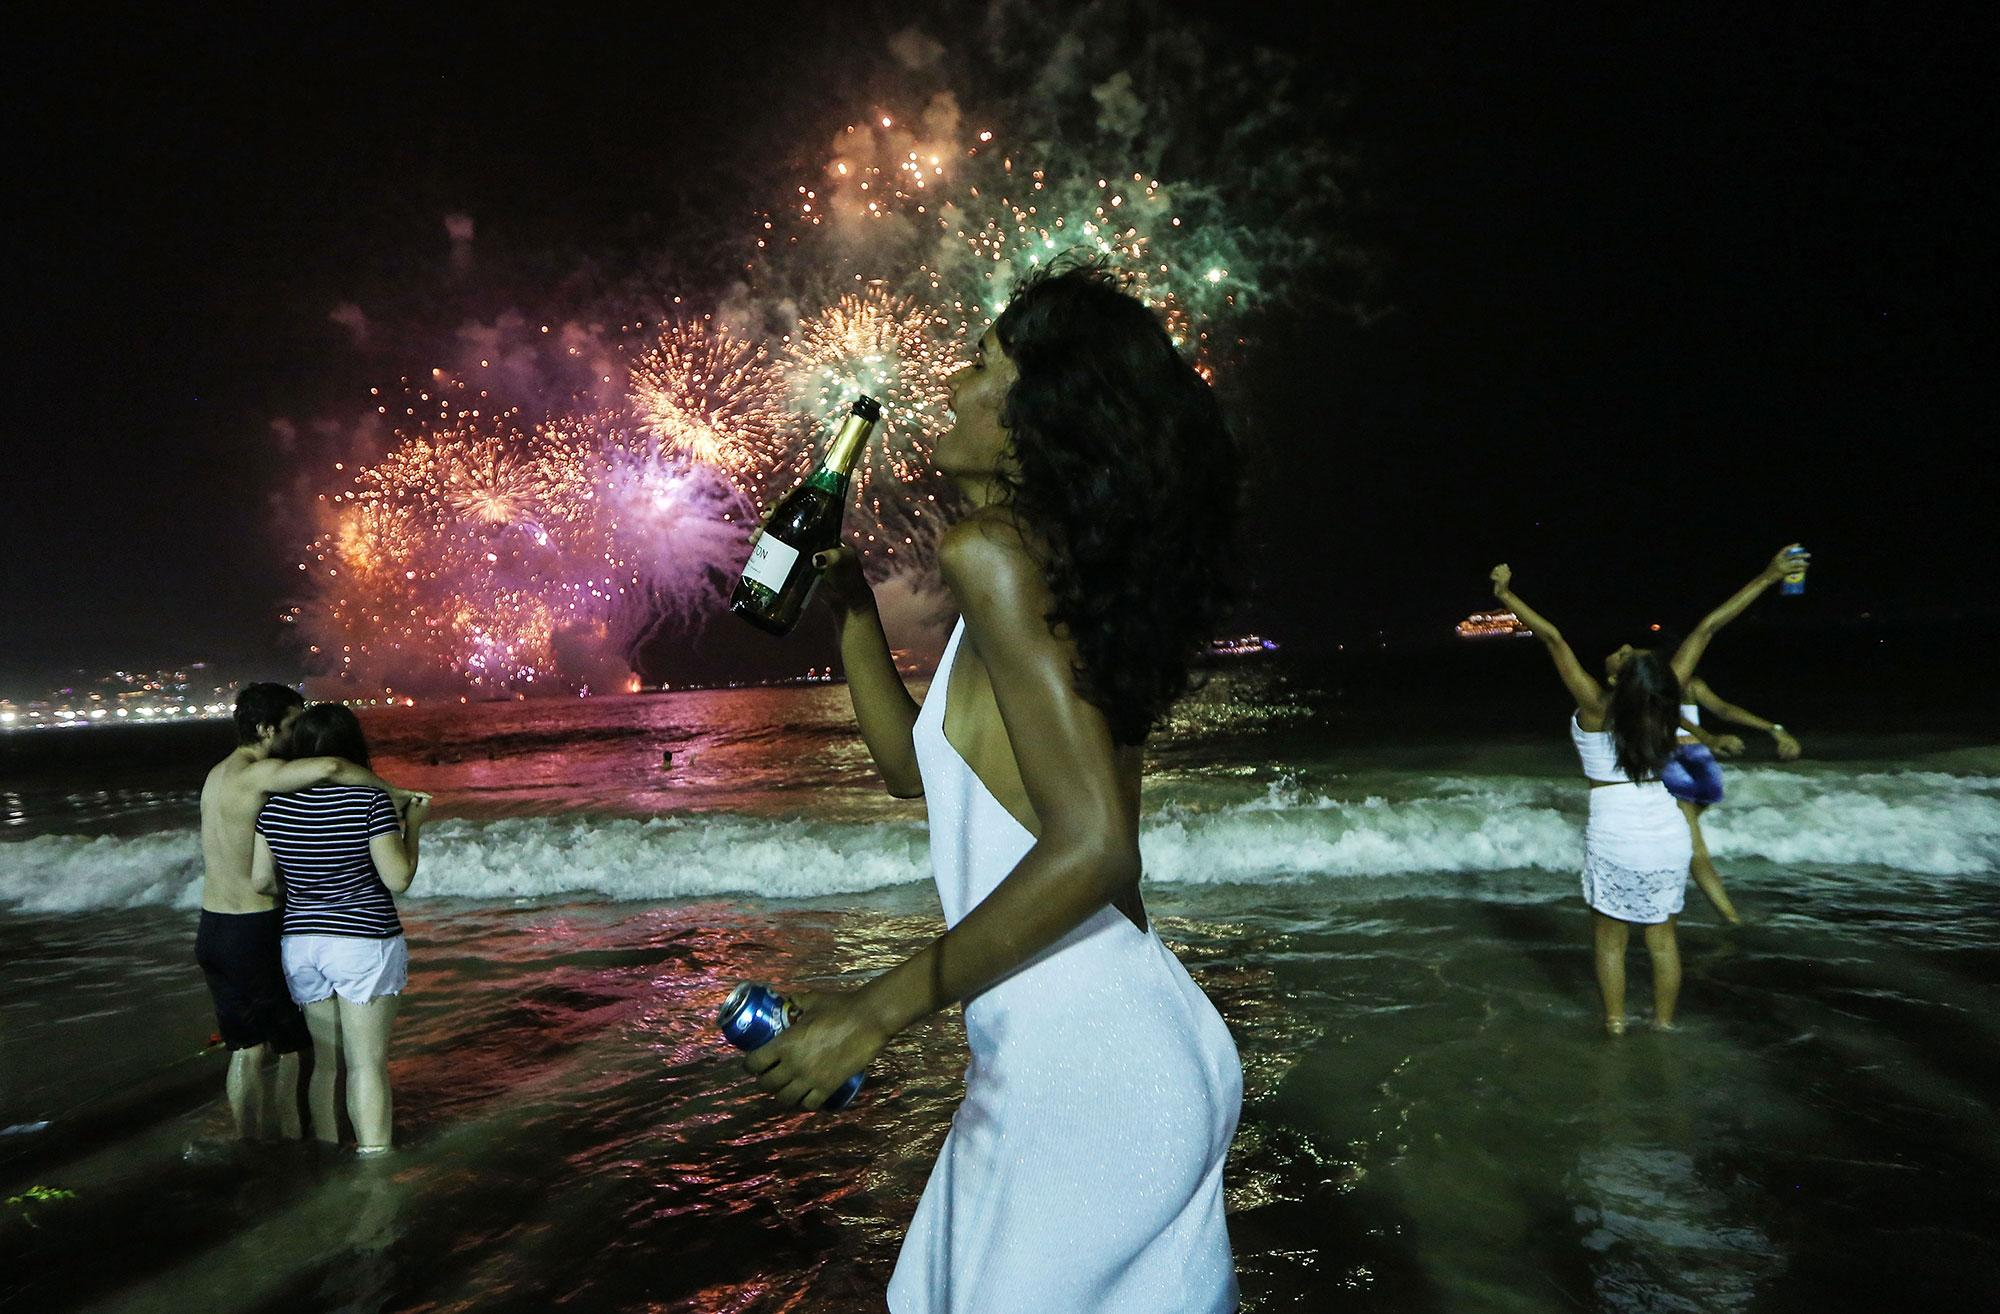 <p>JAN. 1, 2017 – Revelers celebrate during fireworks marking the start of the New Year on Copacabana beach in Rio de Janeiro, Brazil. Brazilian revelers annually mark the turn of midnight on January 1st with fireworks along the famed beach. This year's fireworks were shortened to twelve minutes due to the economic crisis facing the state and country. (Photo: Mario Tama/Getty Images) </p>